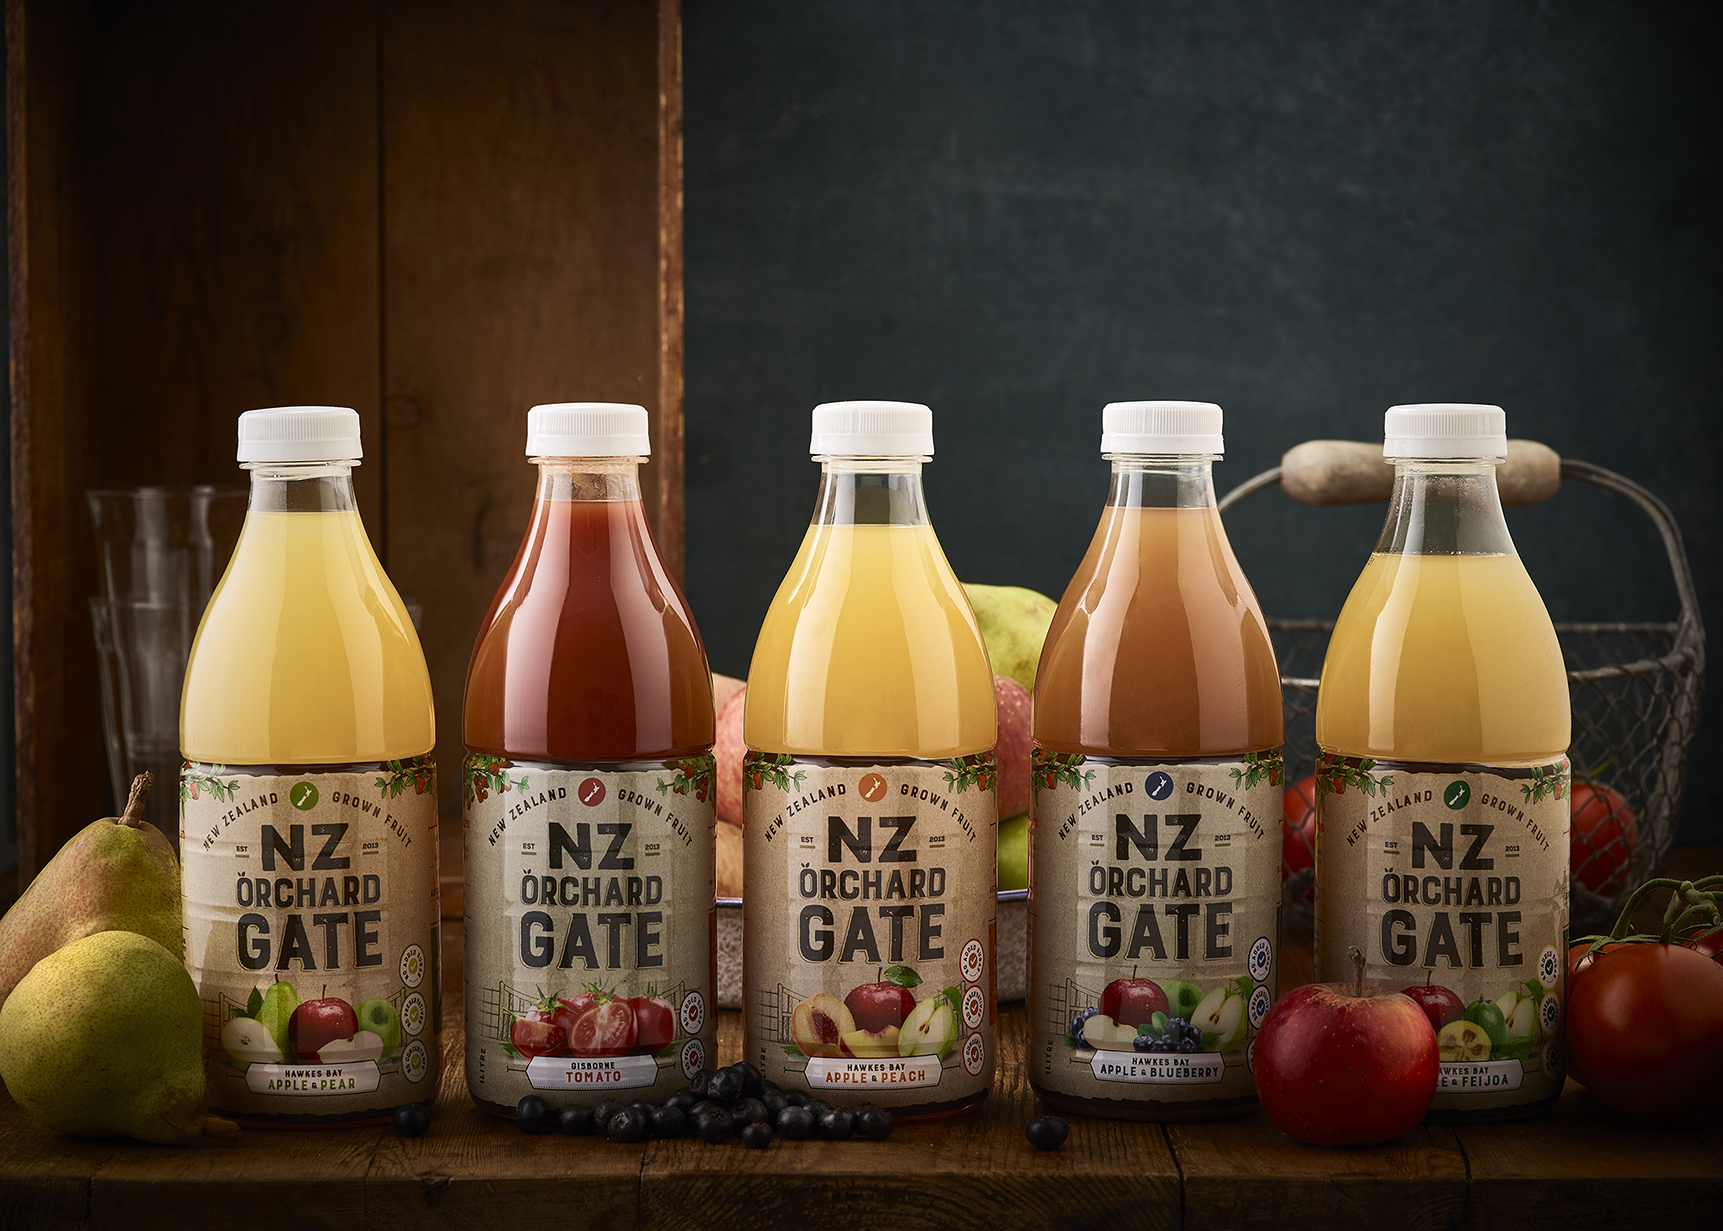 orchard gate juices lined up on a wooden table, surrounded by fruit